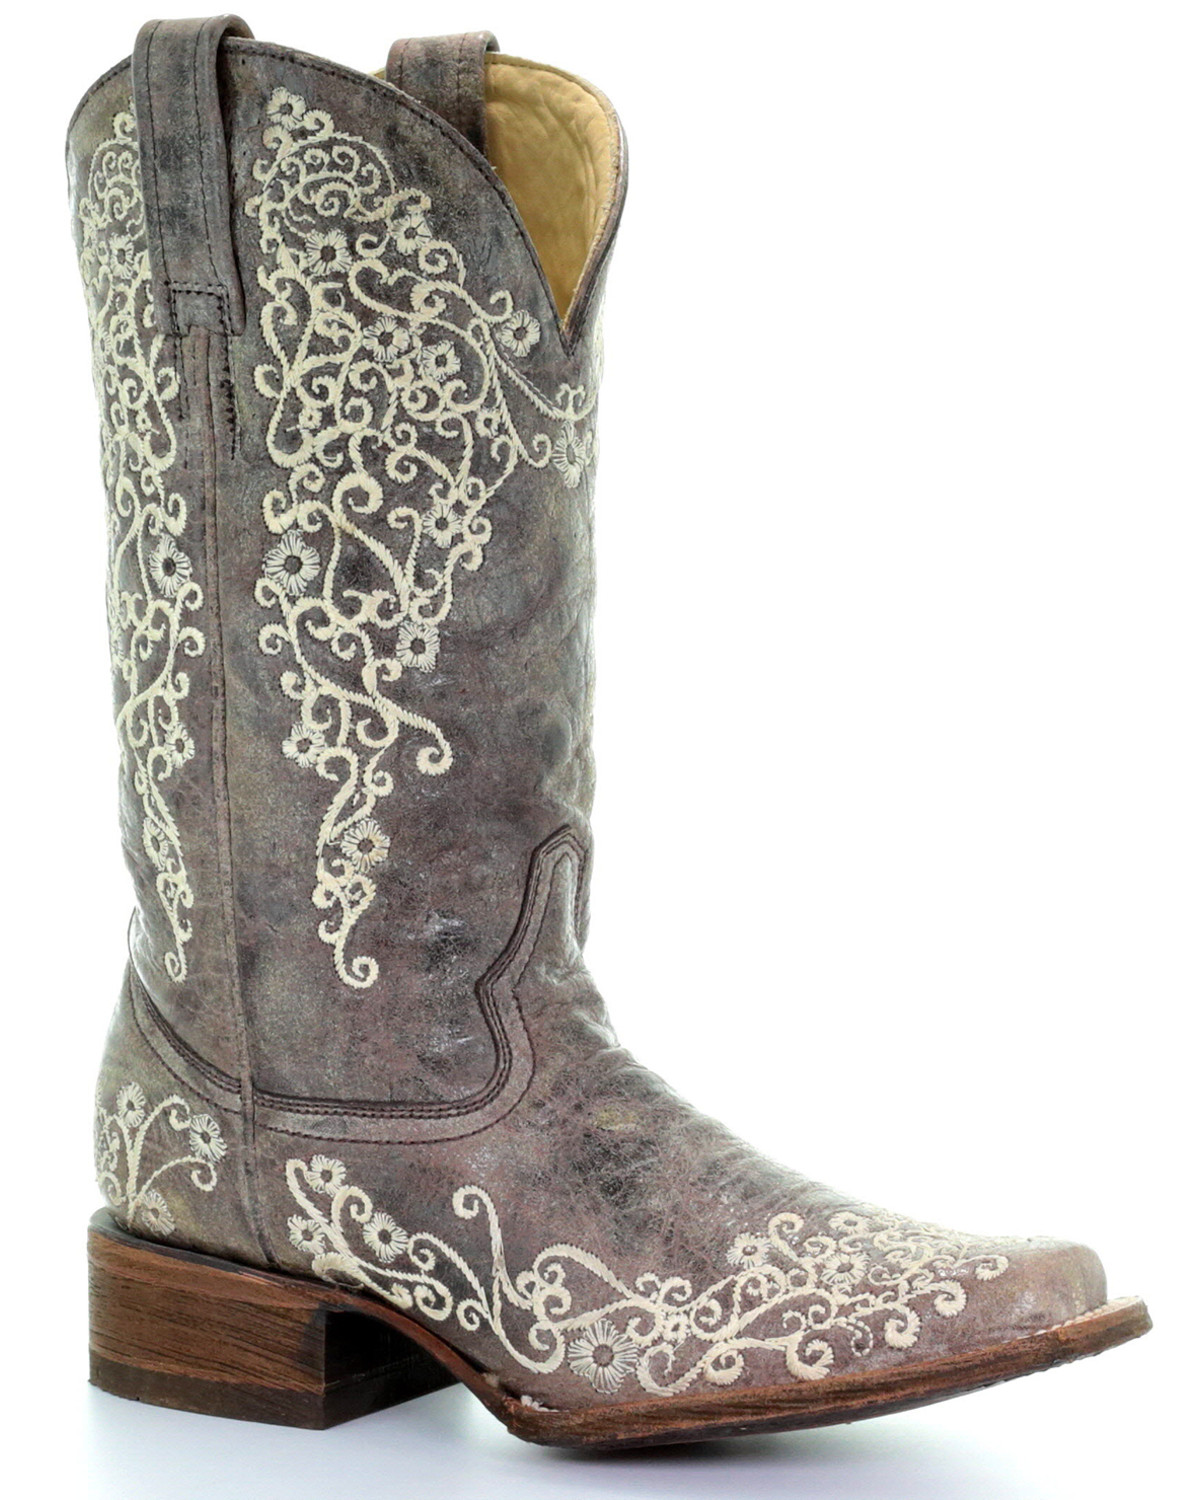 Corral Boots is the premier cowgirl boots brand, showcasing the highest quality leathers matched with exemplary designs and at shopmotorcycleatvprotectivegear9.ml we have one of the largest selections available online. With over 6, pairs of Corral cowgirl boots, you are sure to find the perfect boot in your favorite style and most comfortable fit.